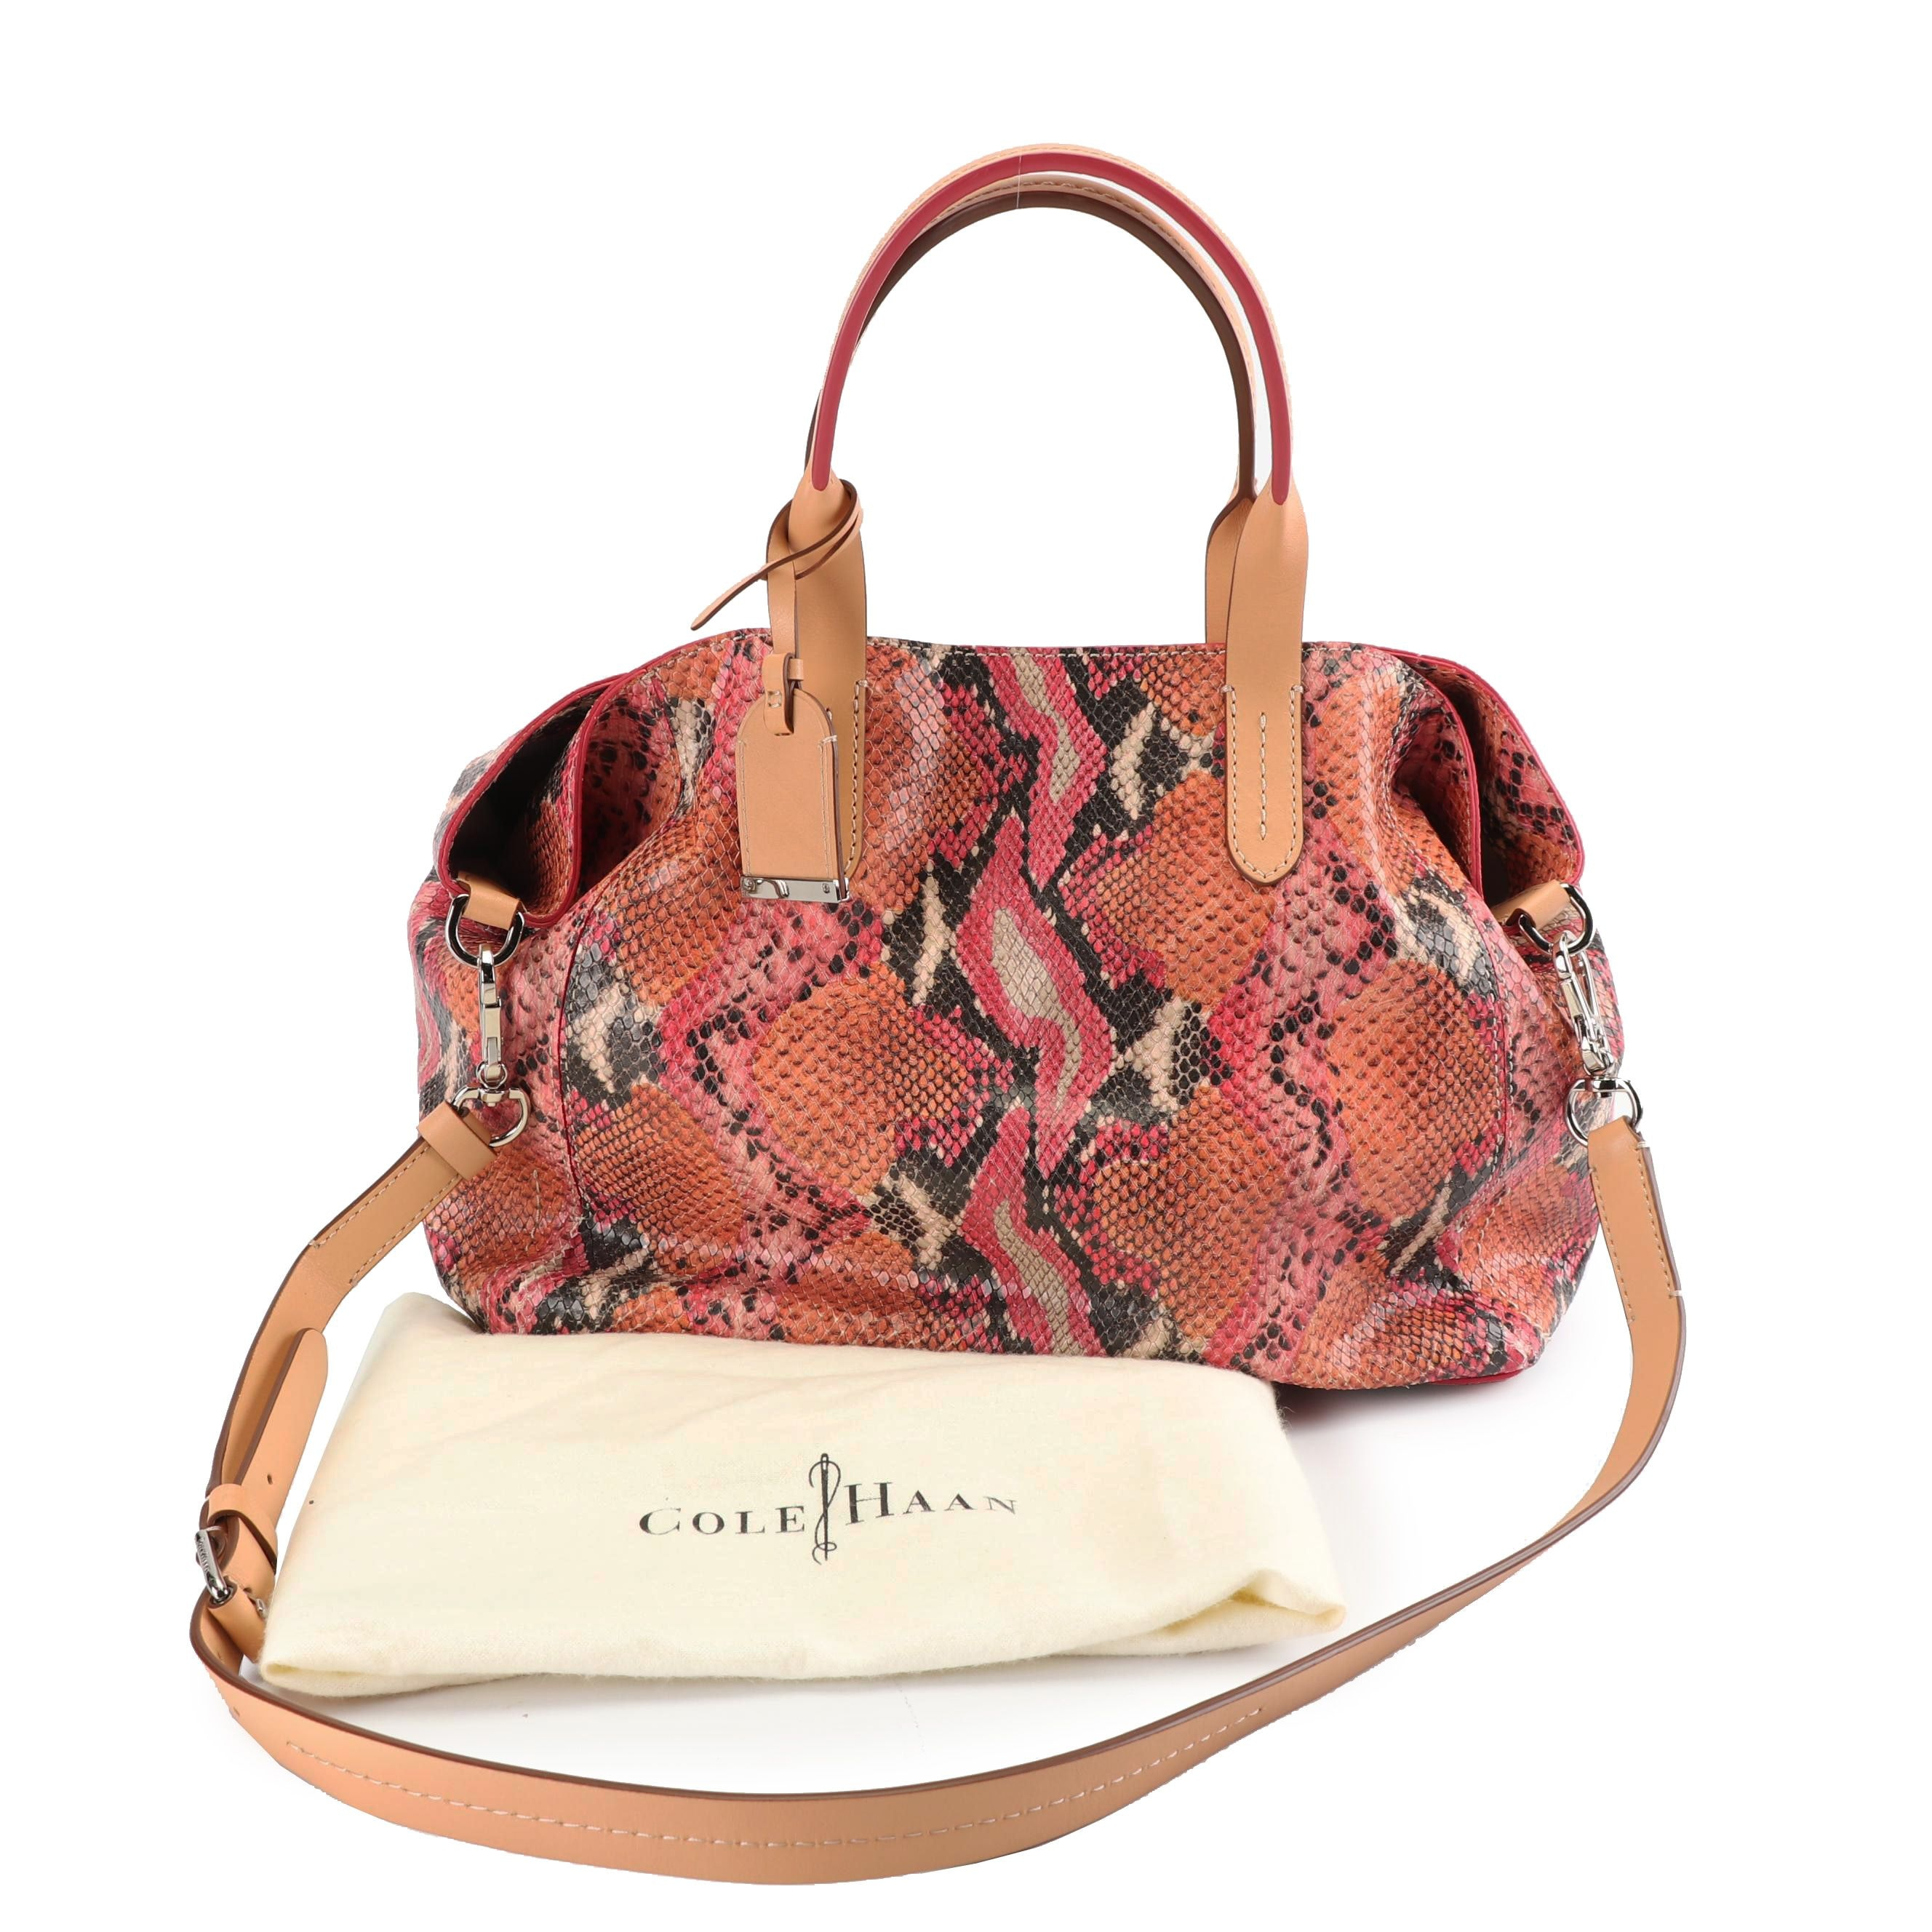 Cole Haan Python Embossed Multicolor Leather Satchel with Dust Bag